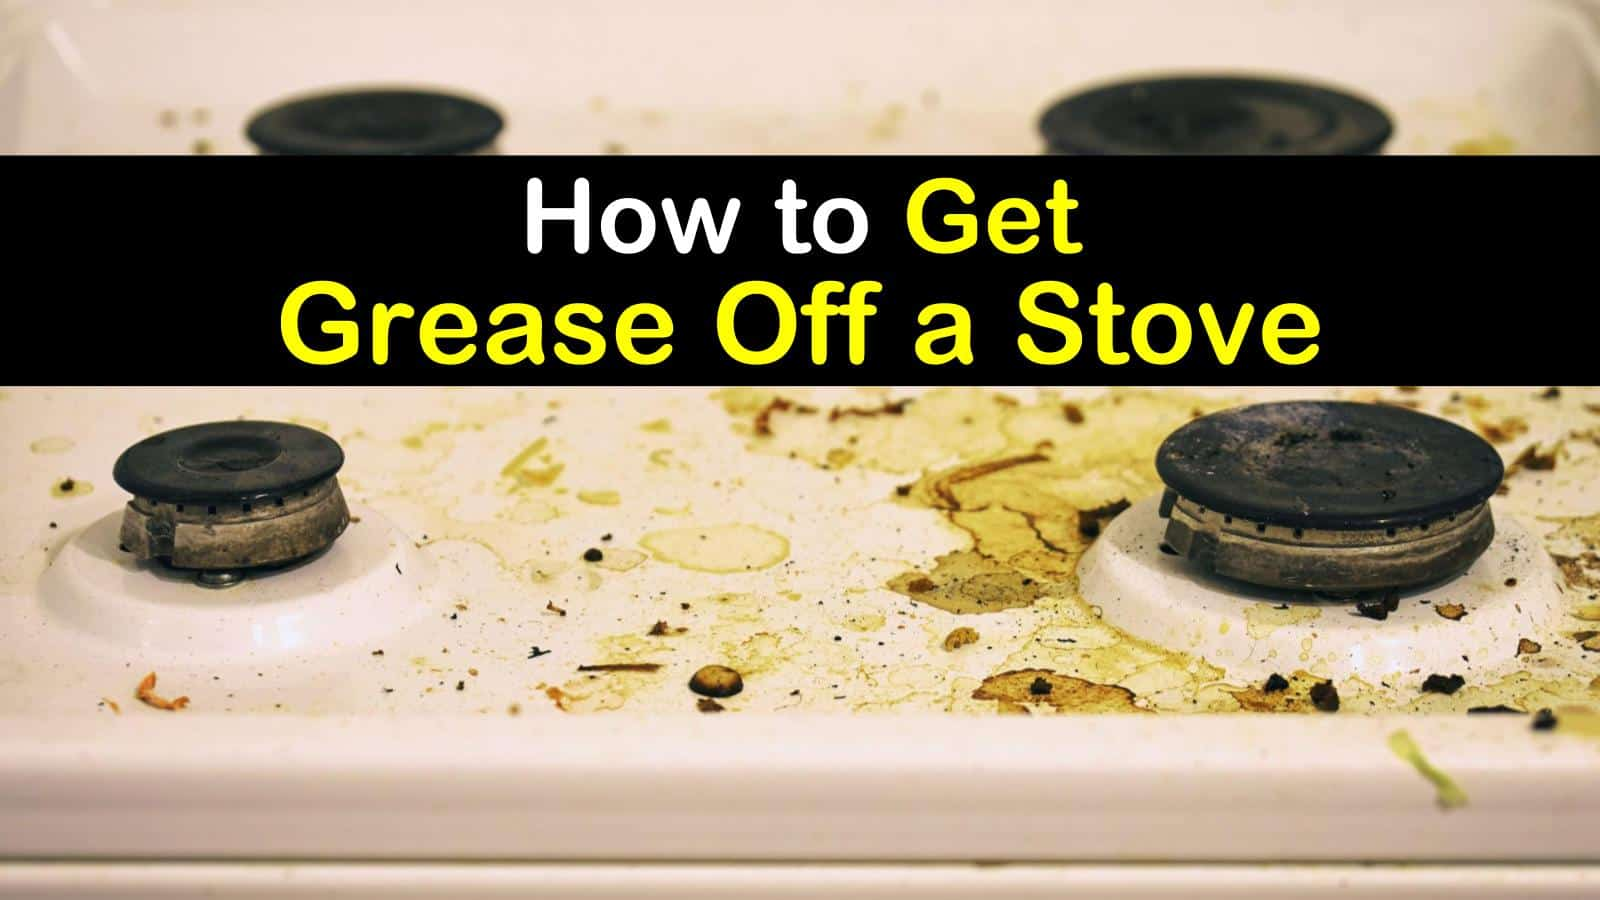 How To Get Grease Off A Stove